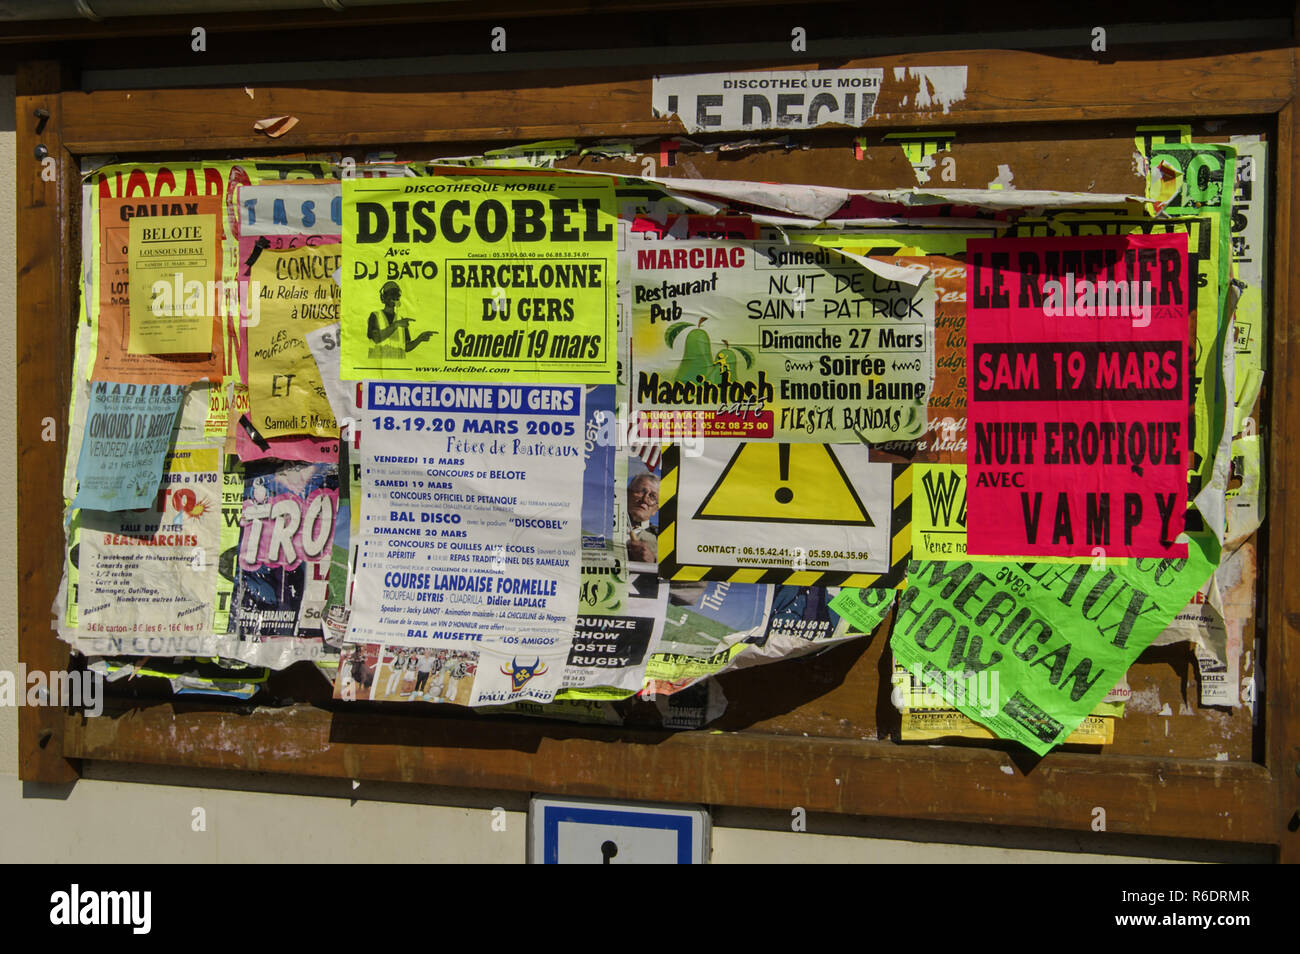 France.Village notice board from 2005.Every village seems to have such a board. Stock Photo